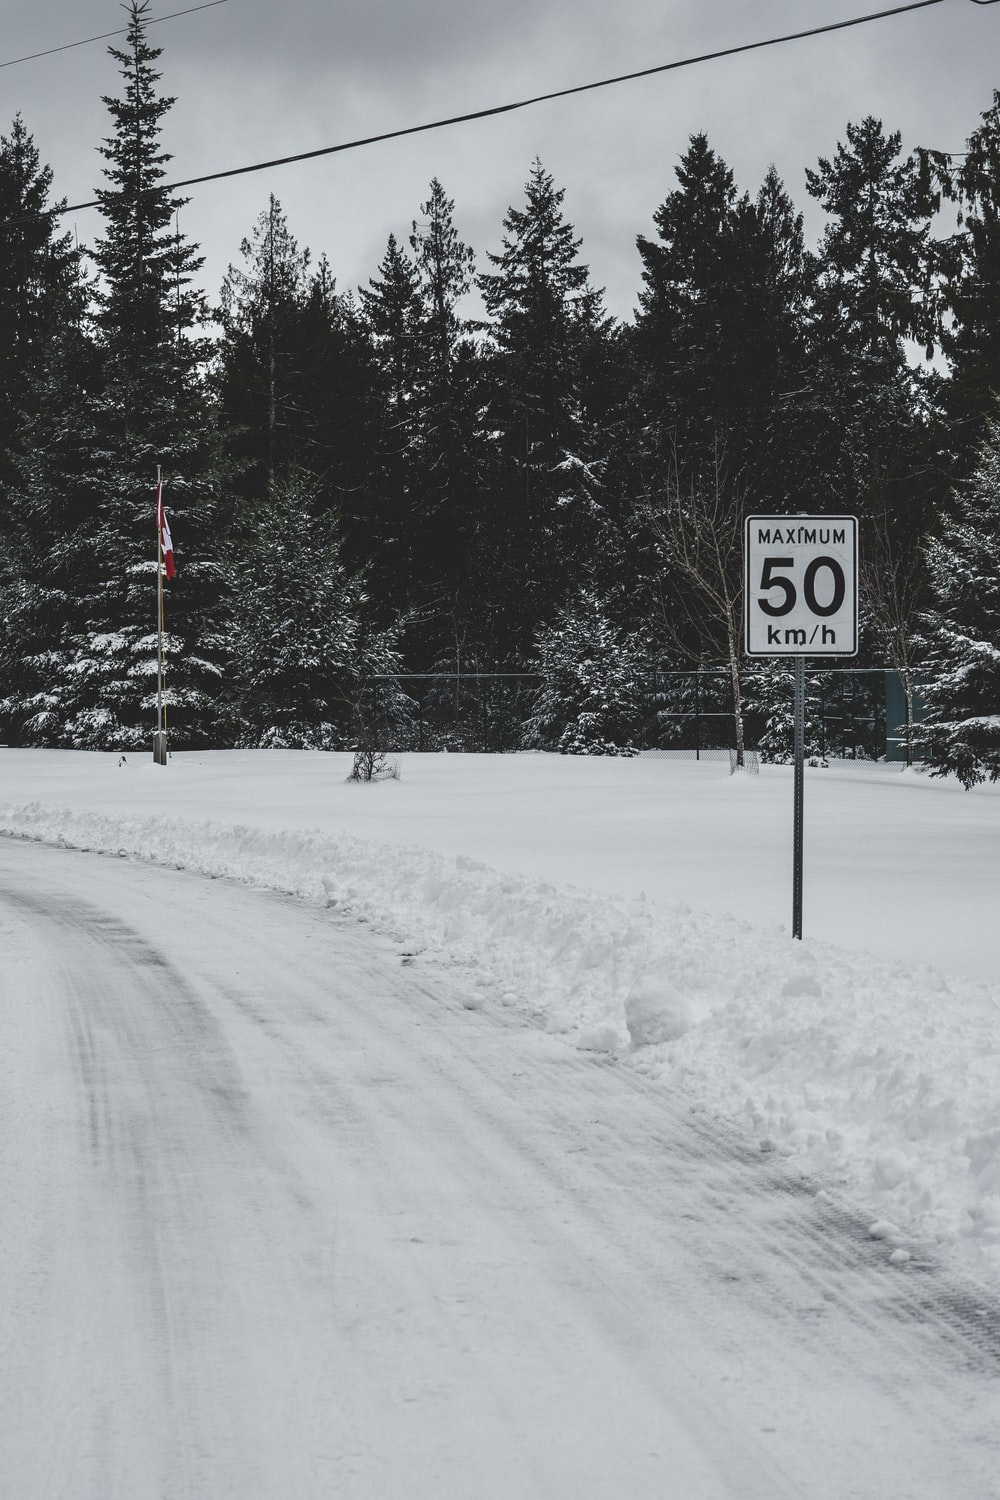 black and white stop sign on snow covered ground